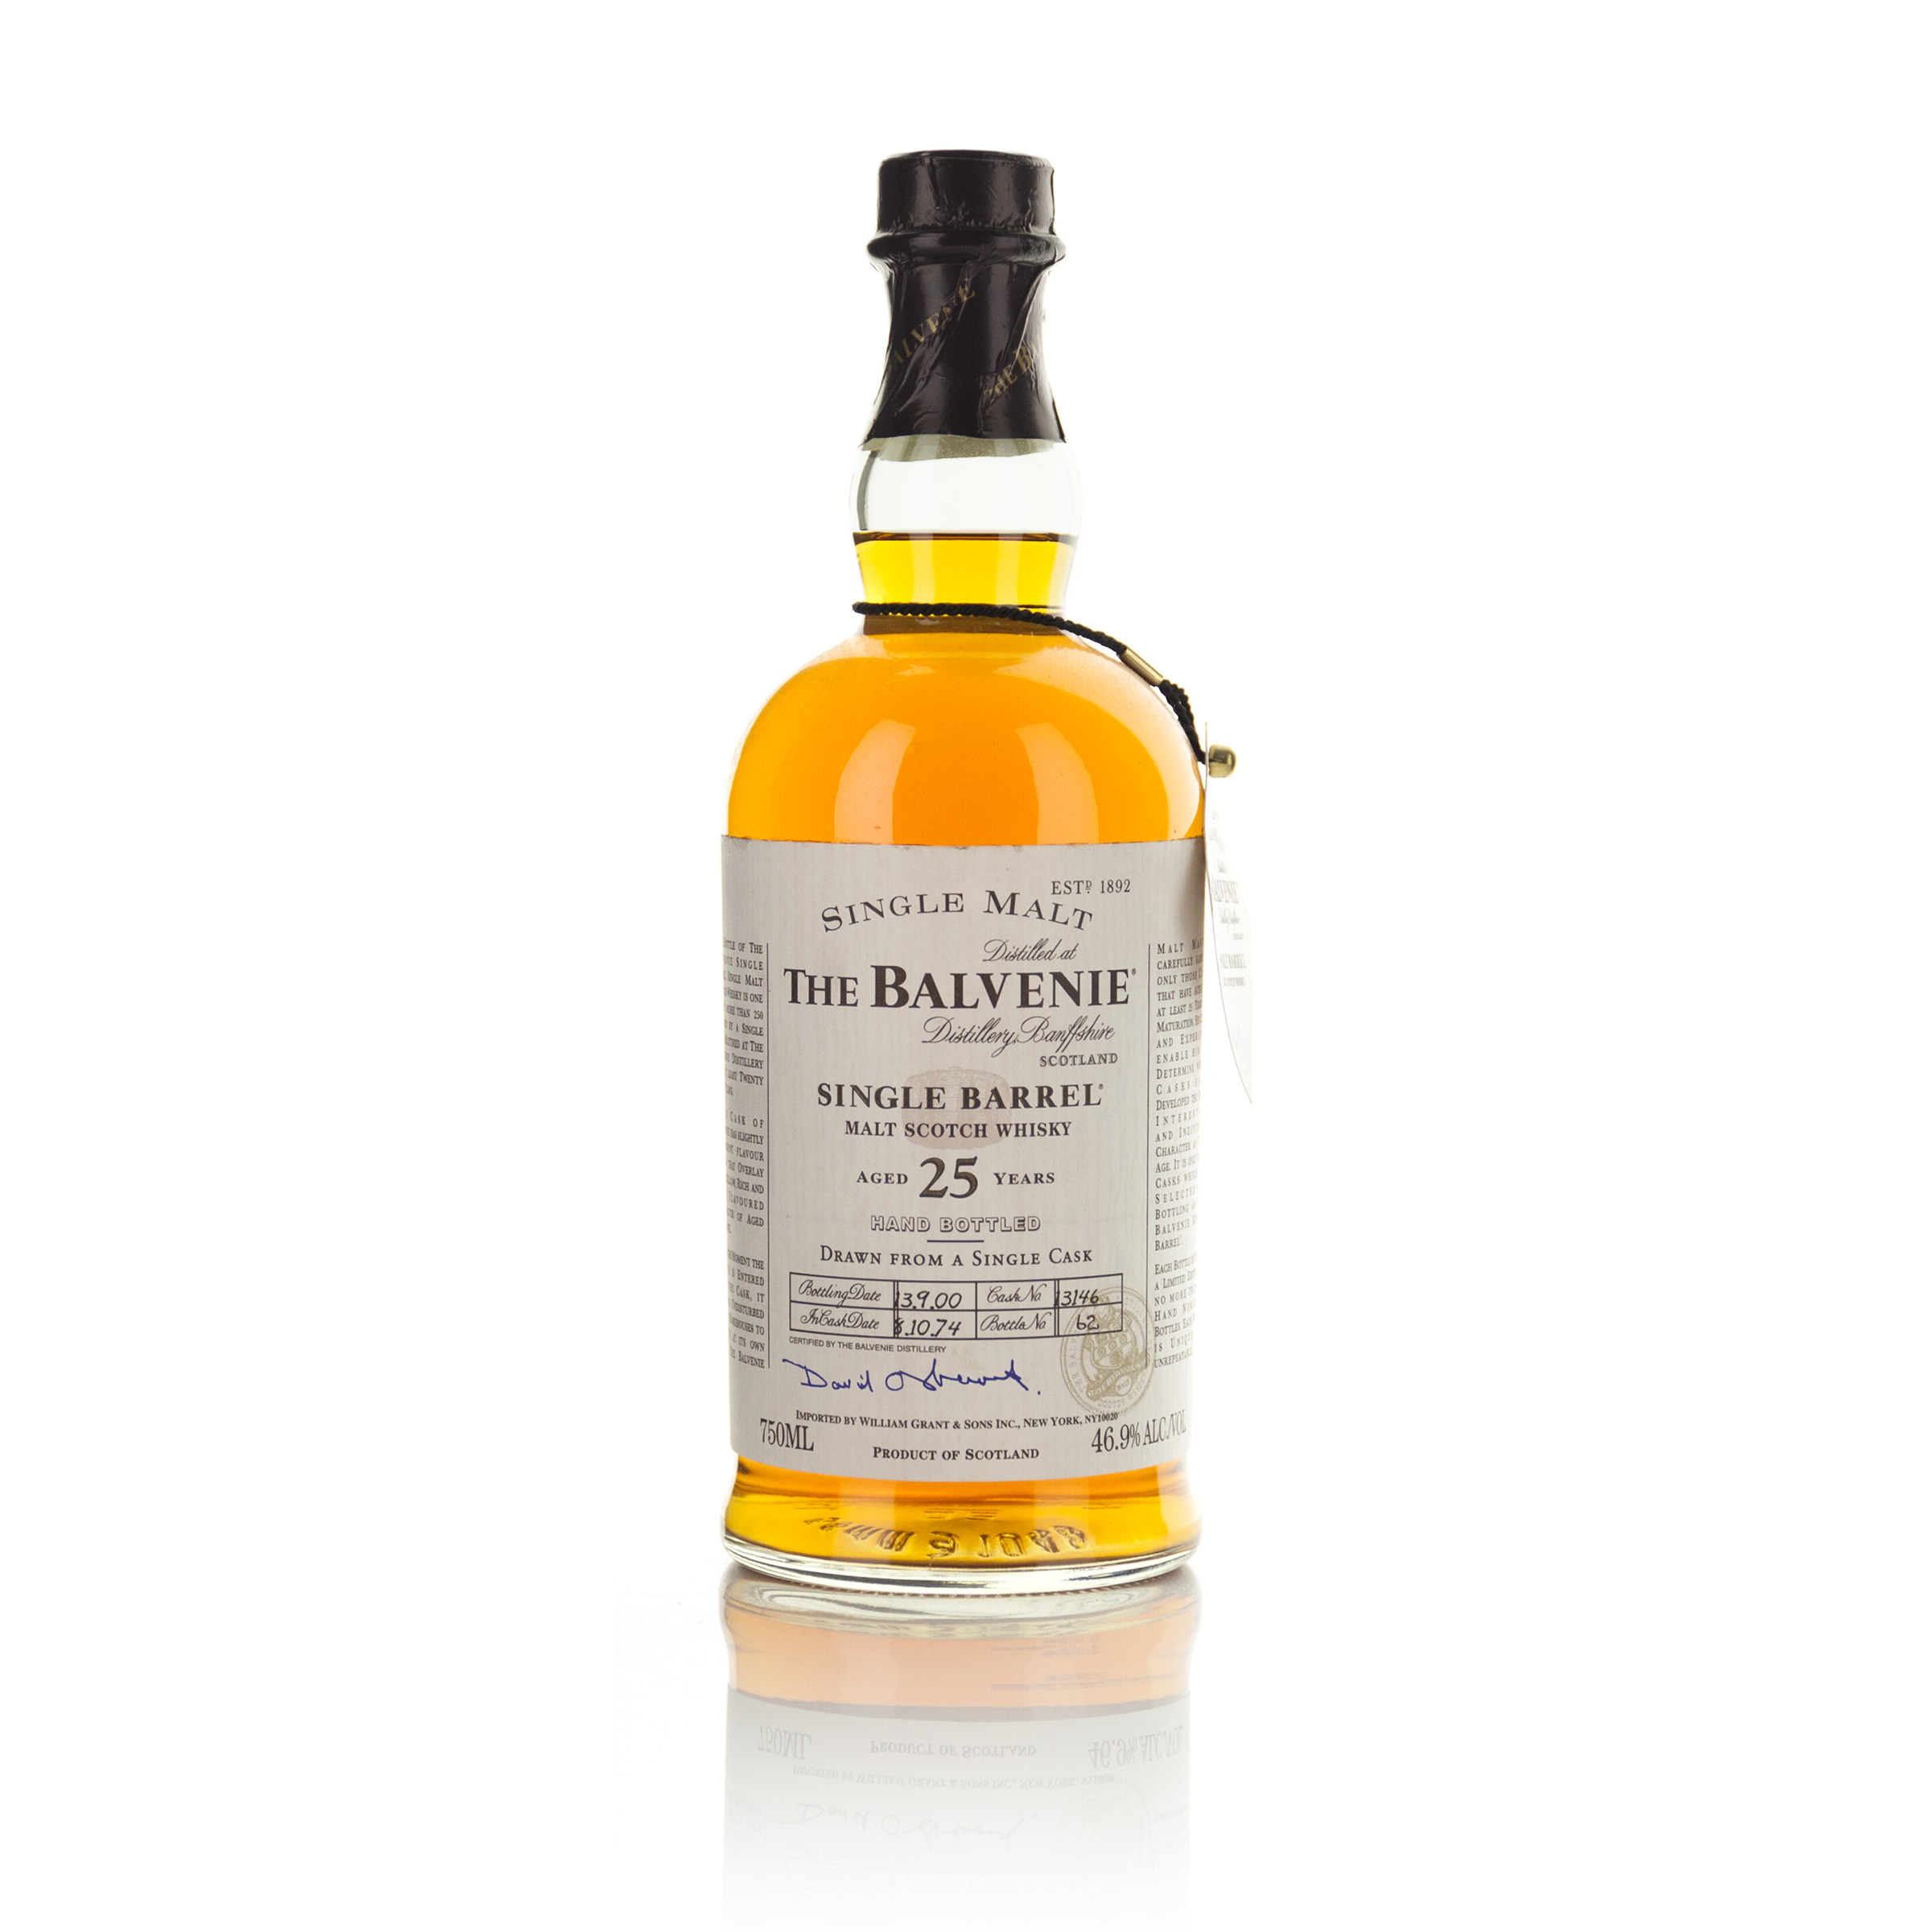 THE BALVENIE SINGLE BARREL MALT SCOTCH WHISKY 25 YEARS (ONE 750 ML)